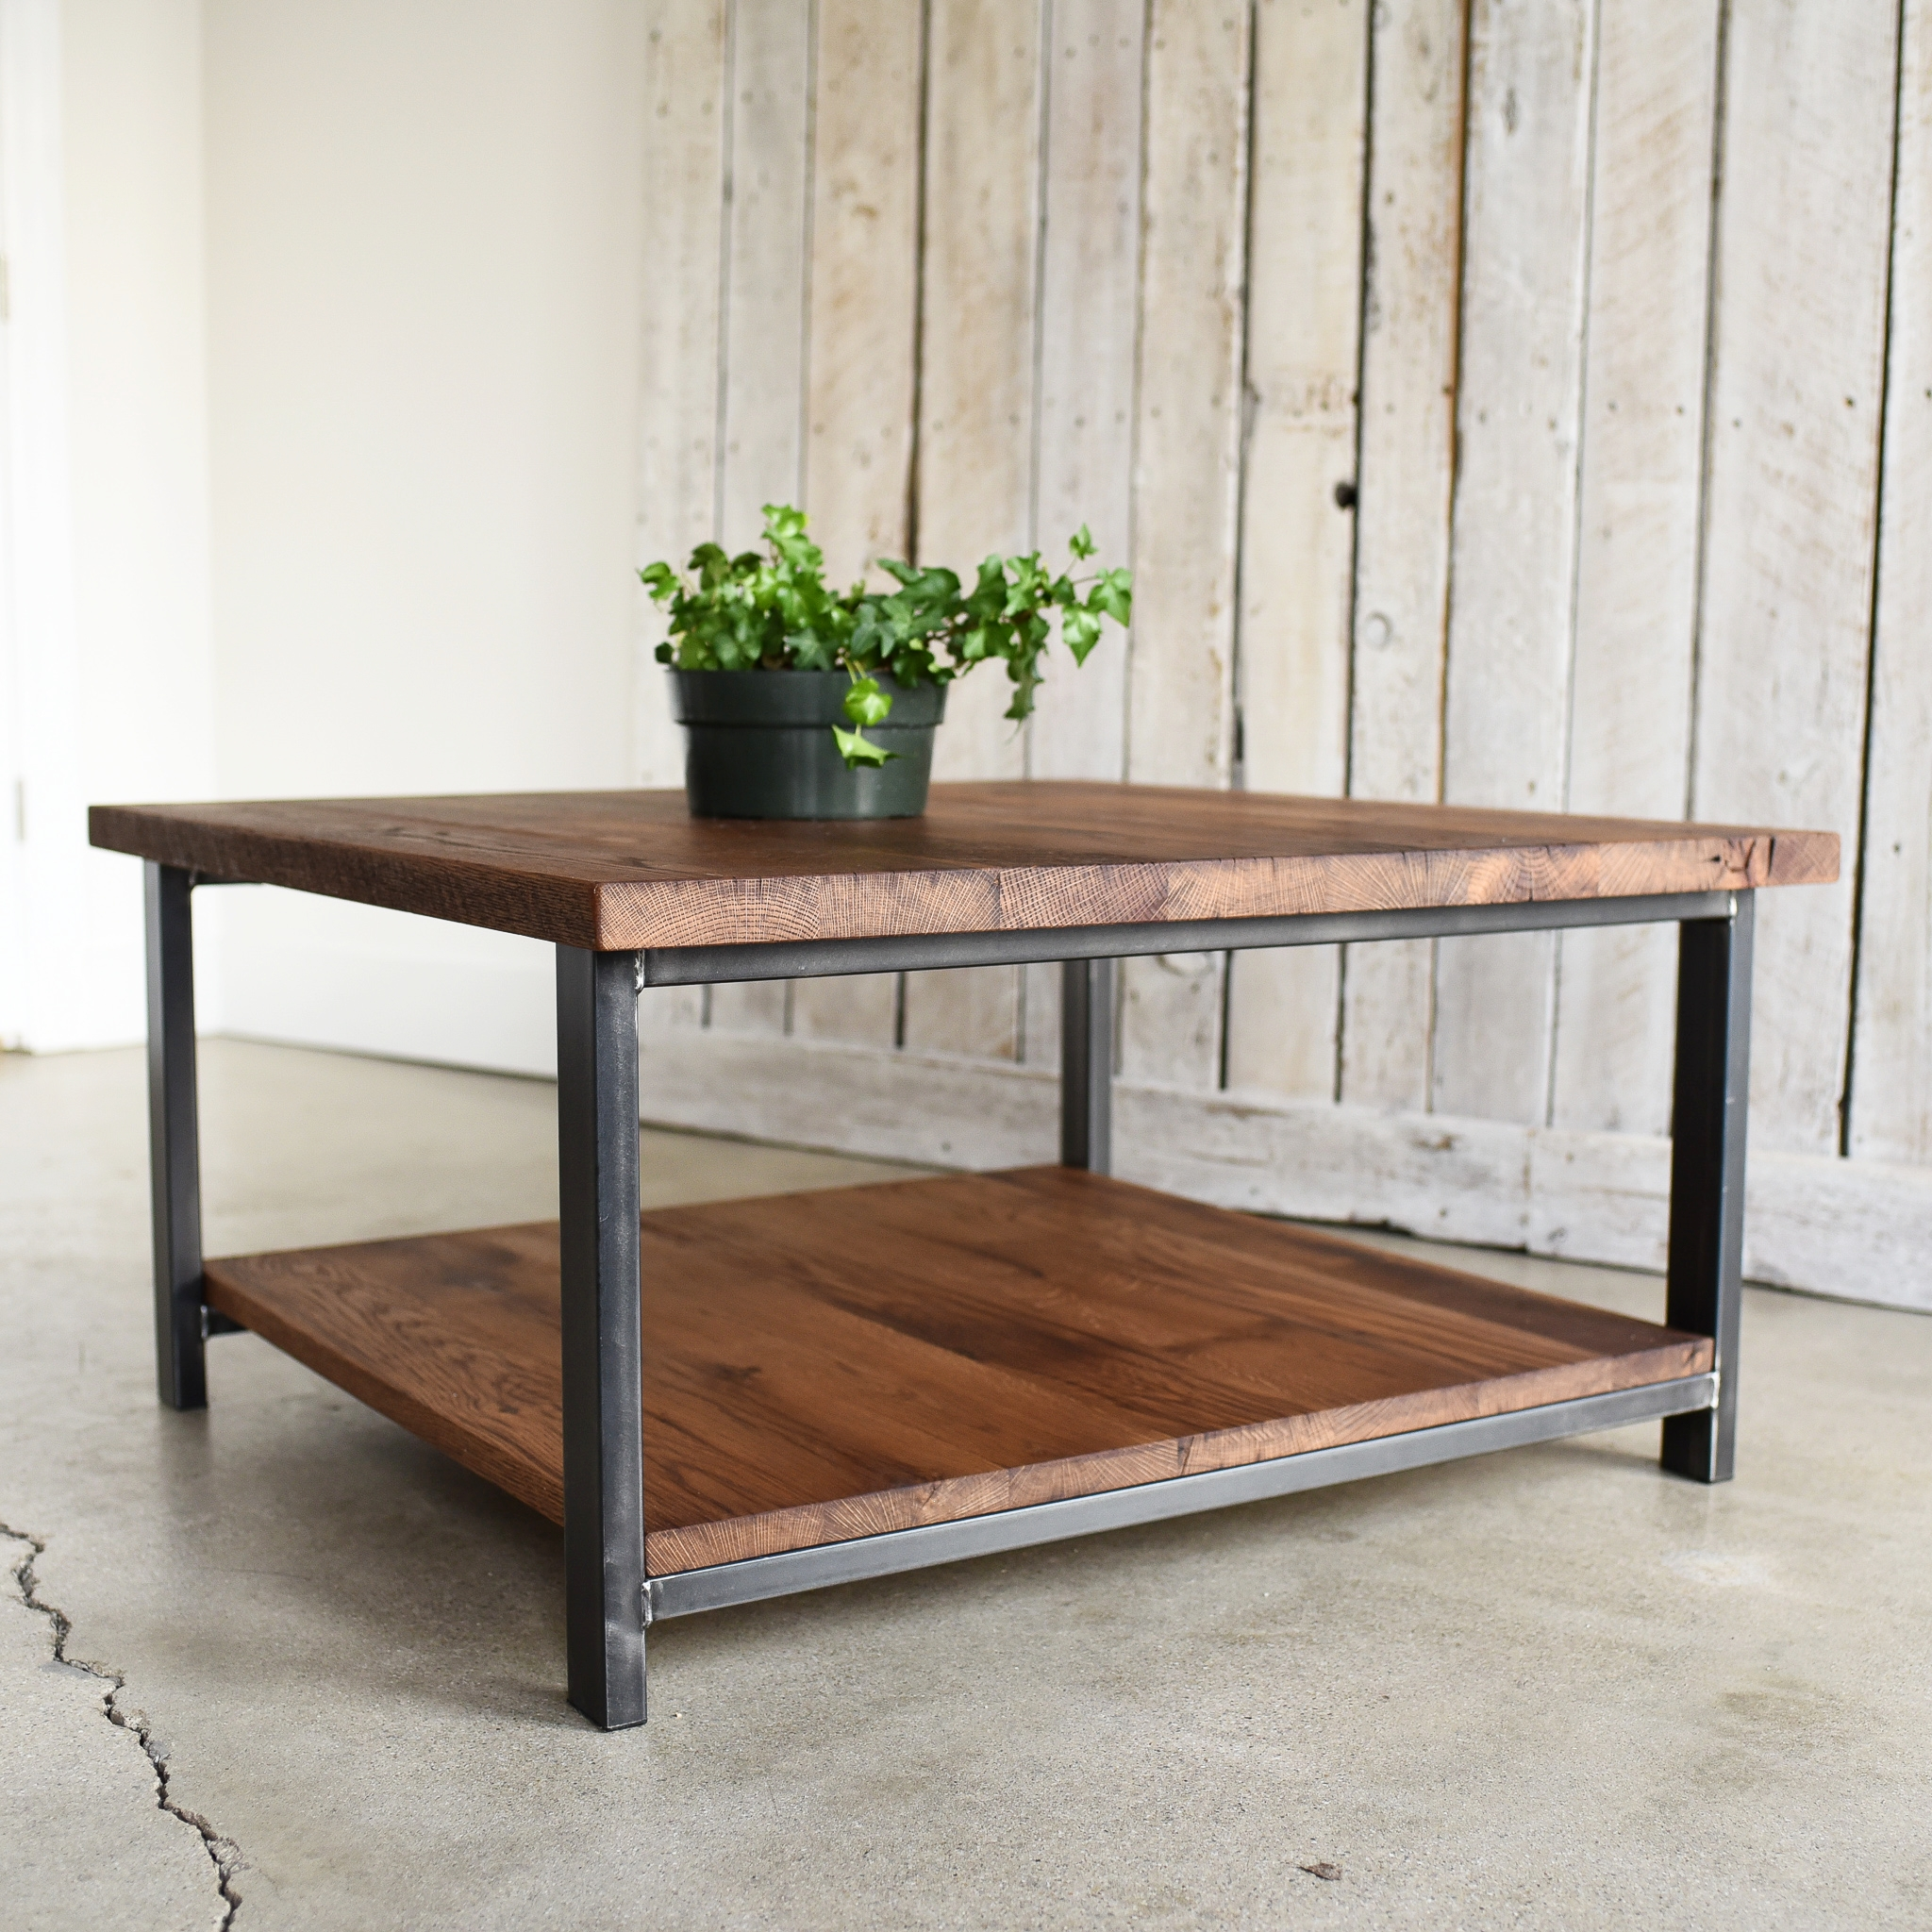 square reclaimed wood coffee table lower shelf what we make